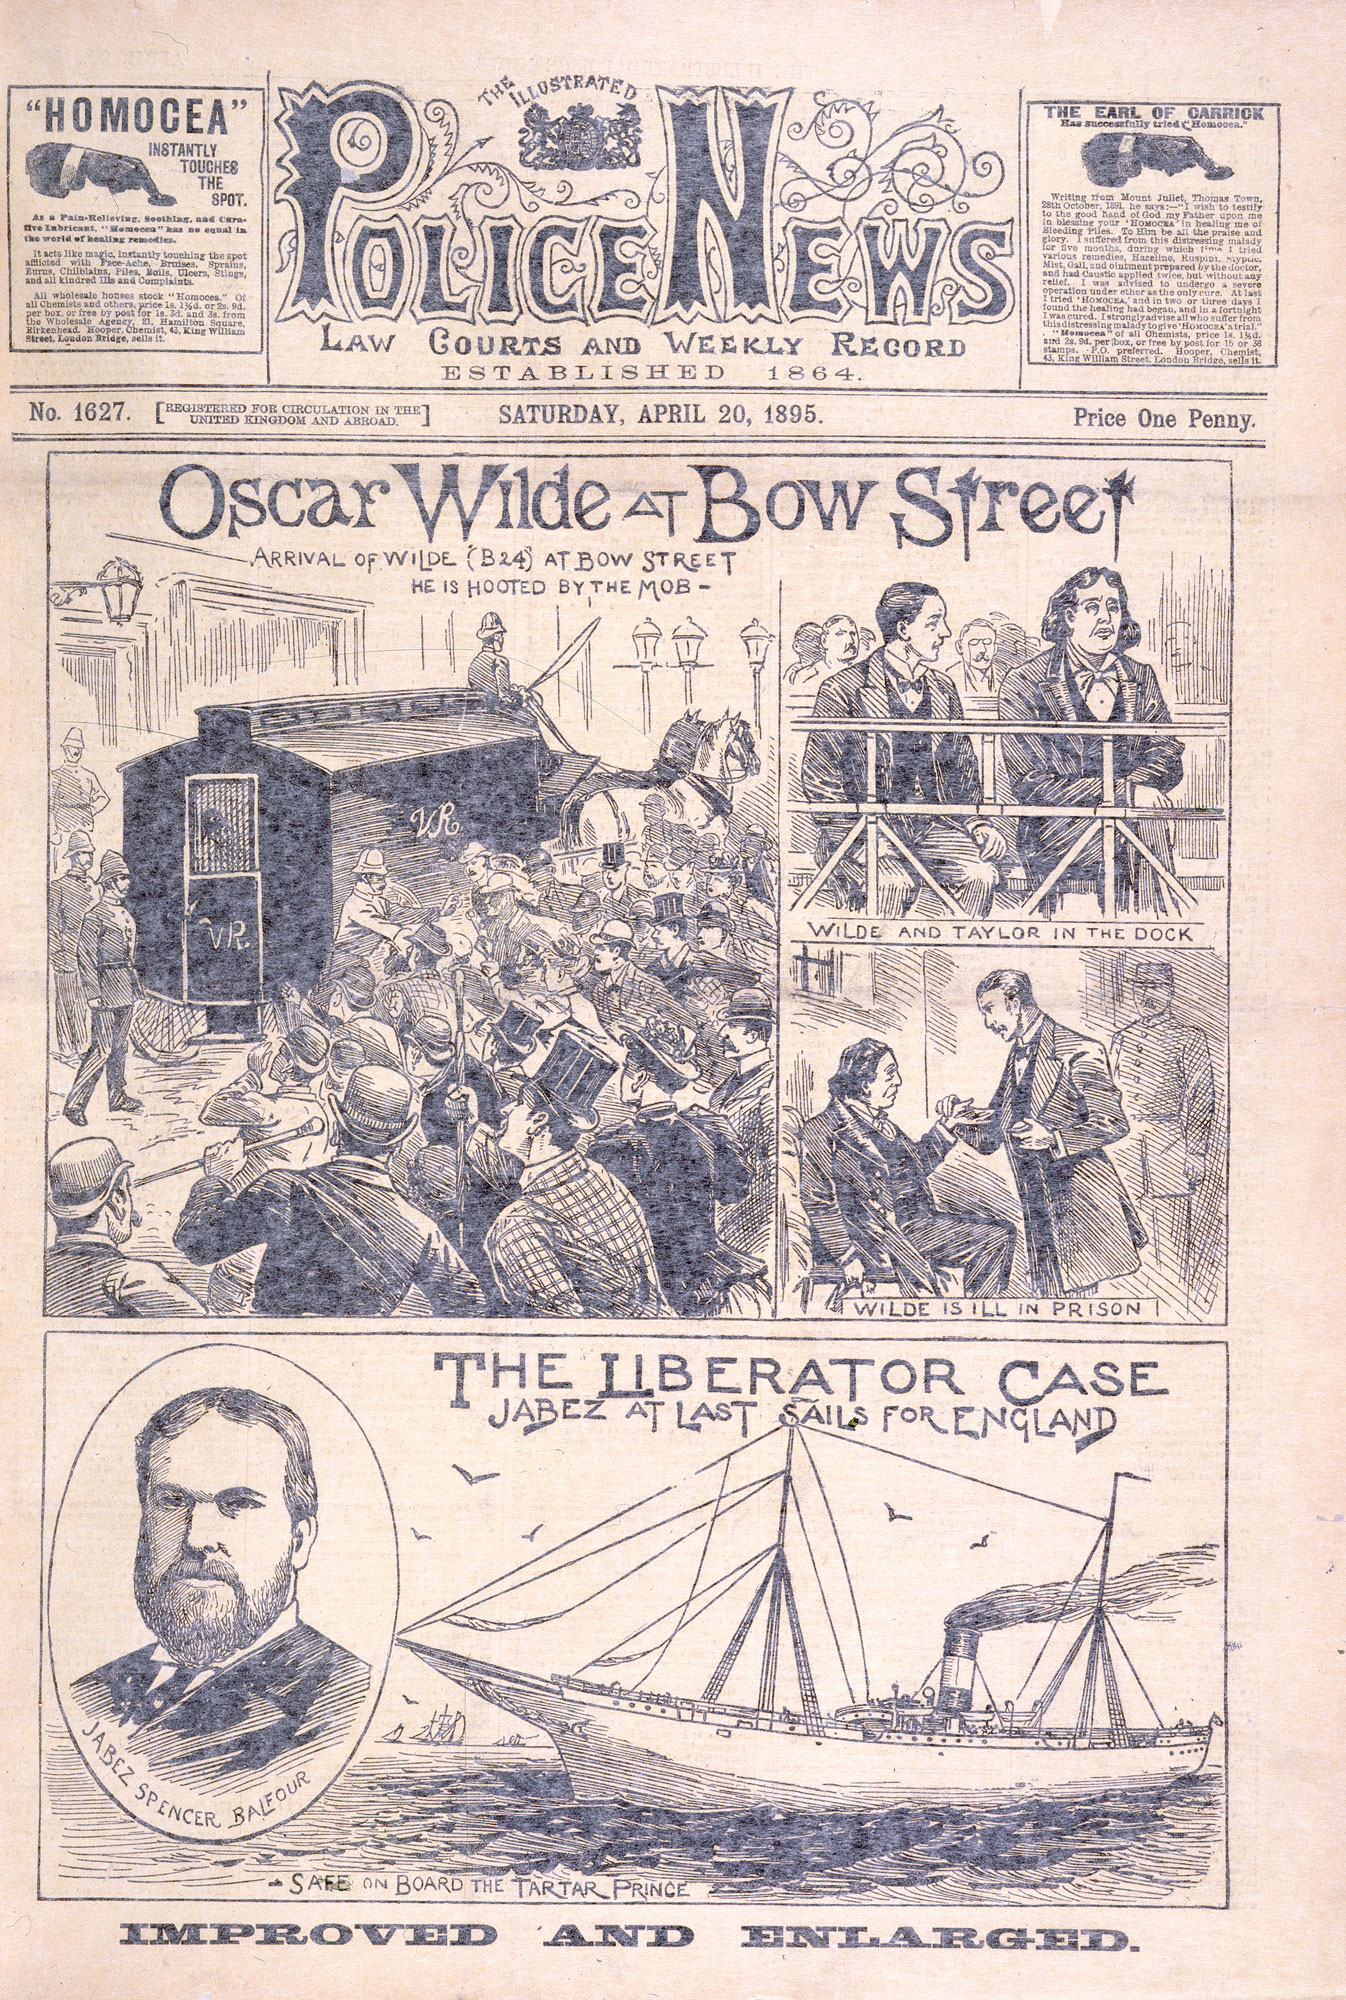 'Oscar Wilde at Bow Street': newspaper coverage of the Oscar Wilde trial